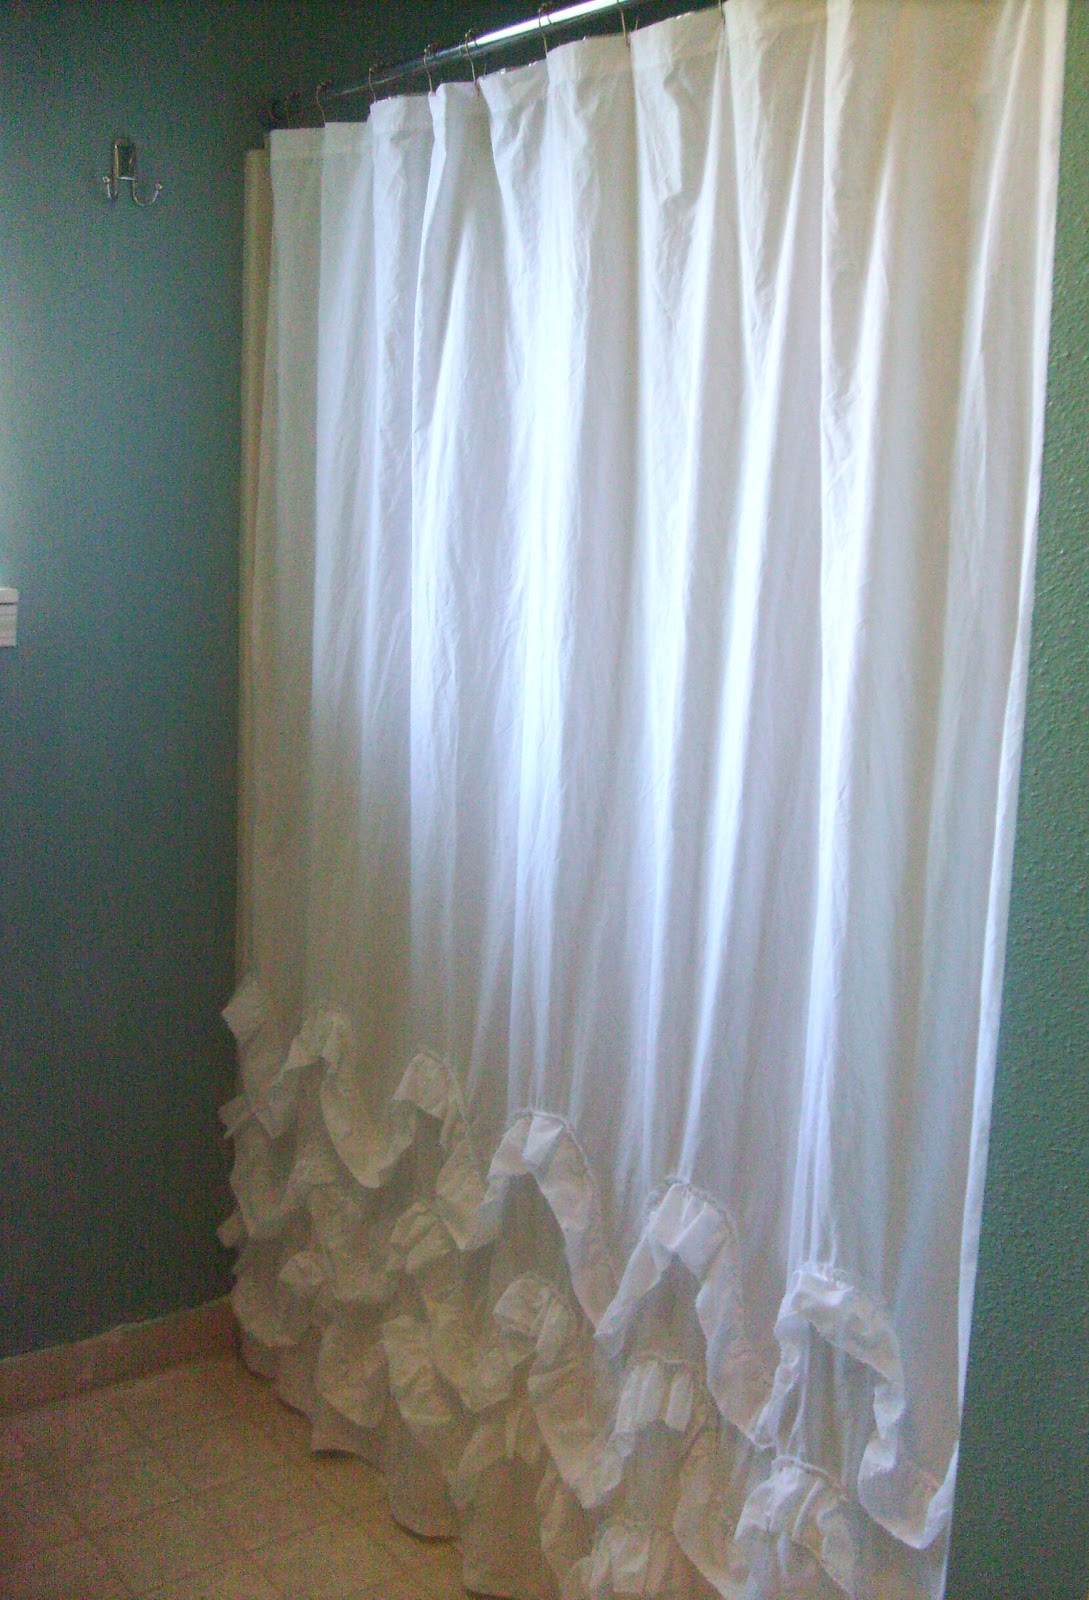 Adventures in Dressmaking: Bathroom curtains with matching ruffles